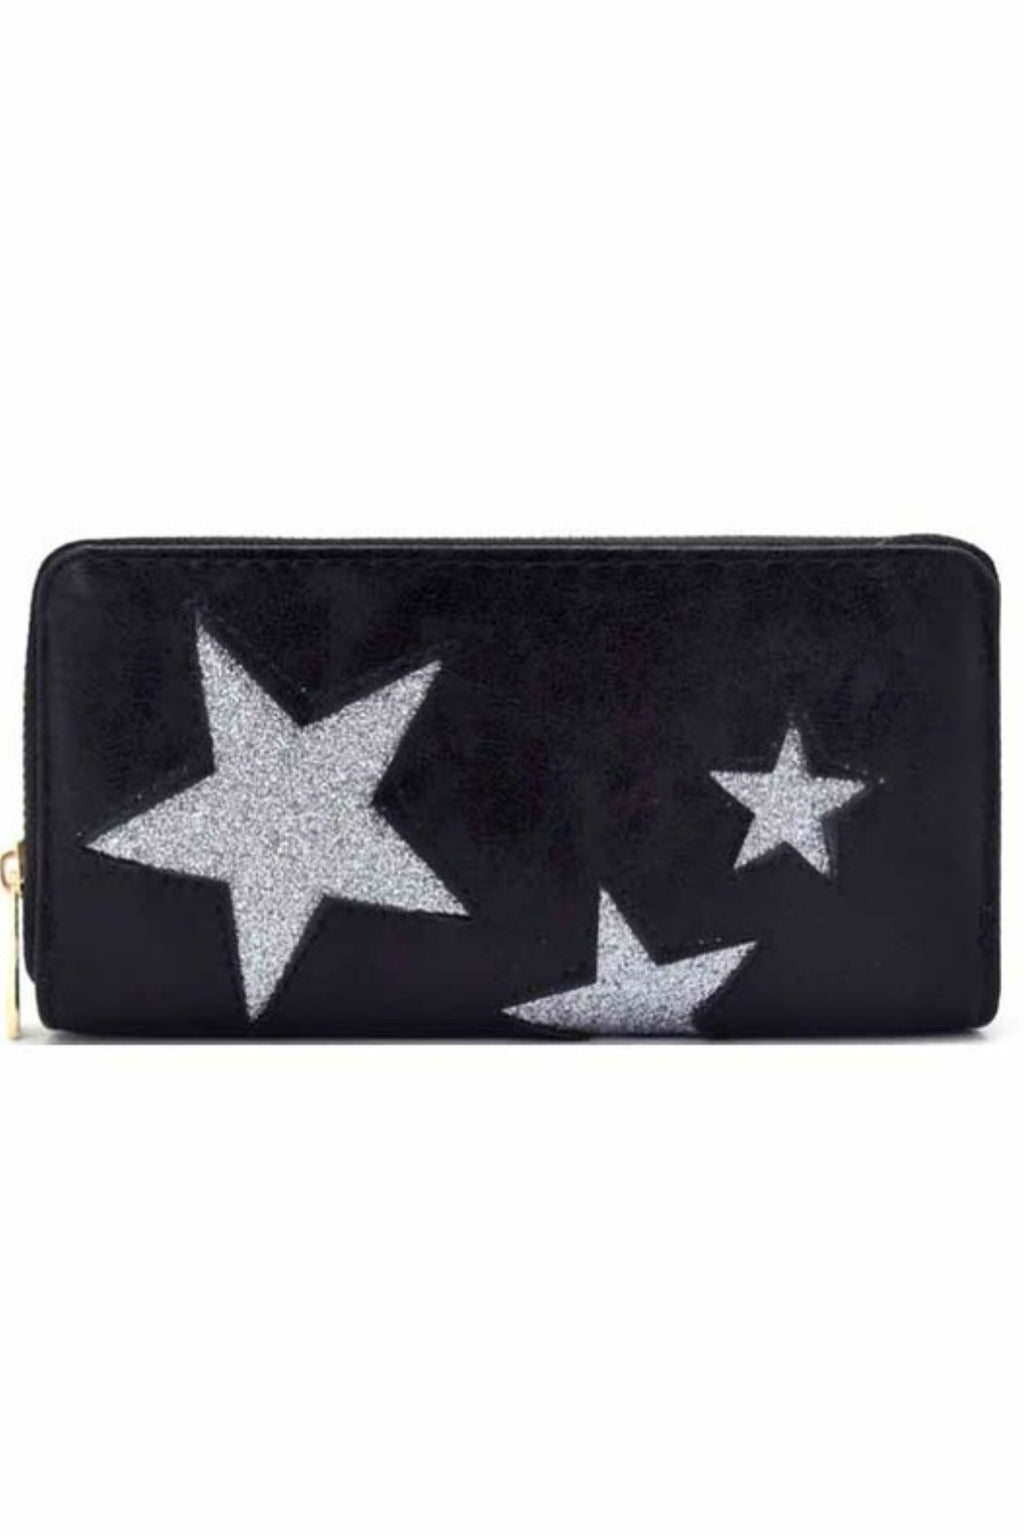 """Wish Upon A Star"" Wallet"